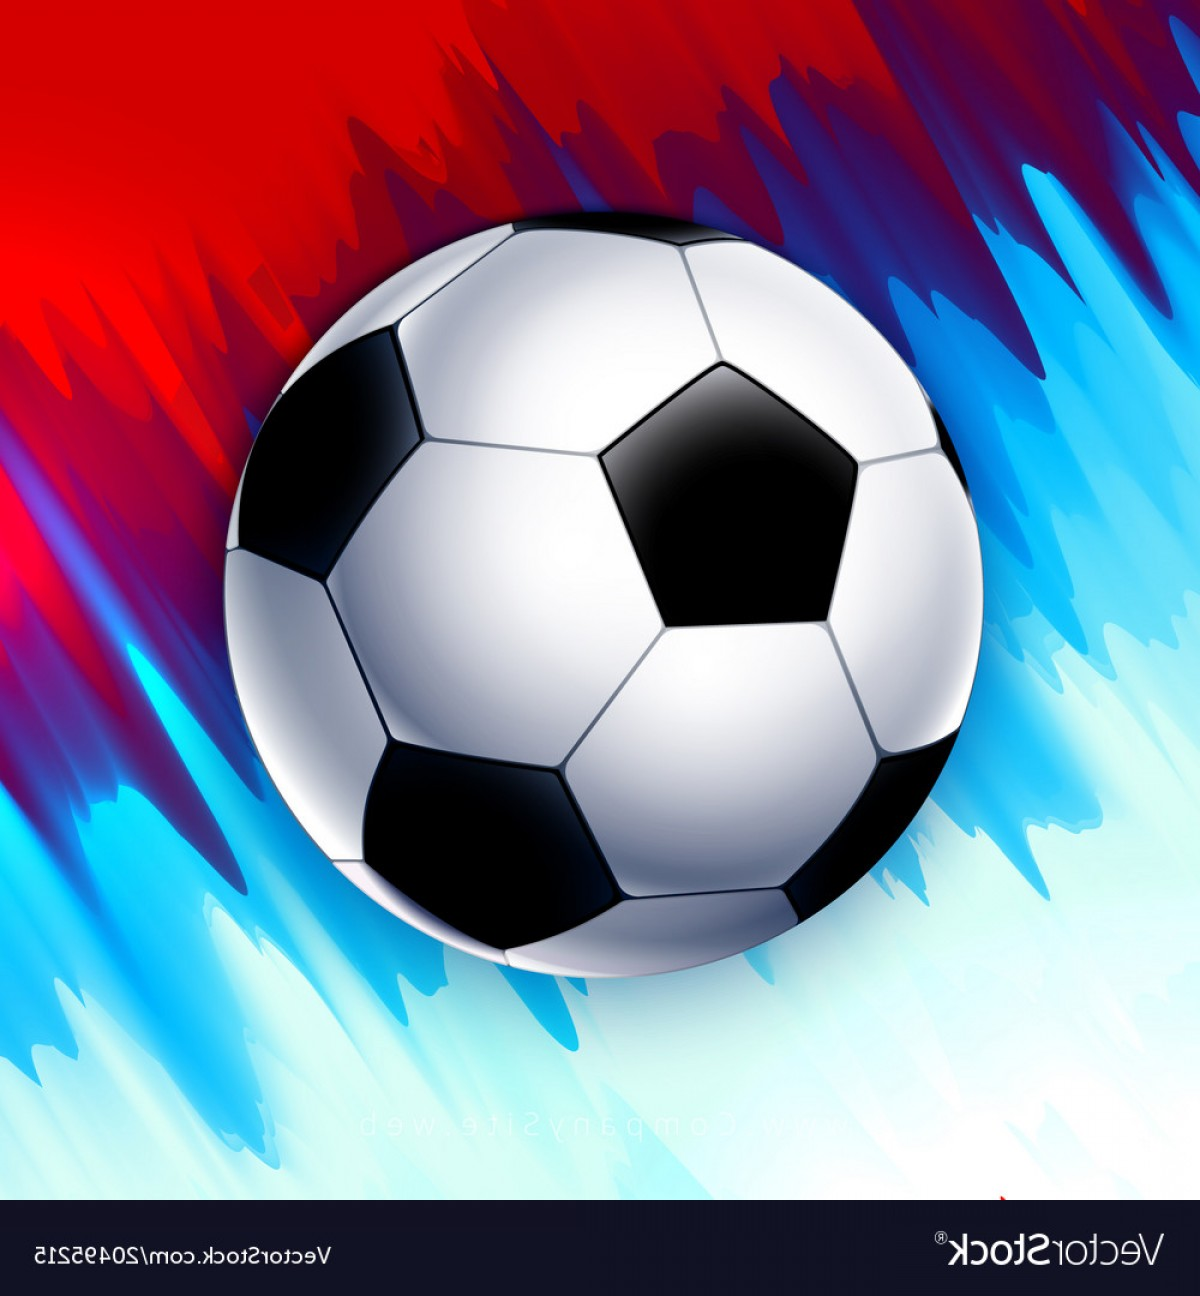 Football Vector Wallpaper: Football World Cup Russia Wallpaper Color Vector